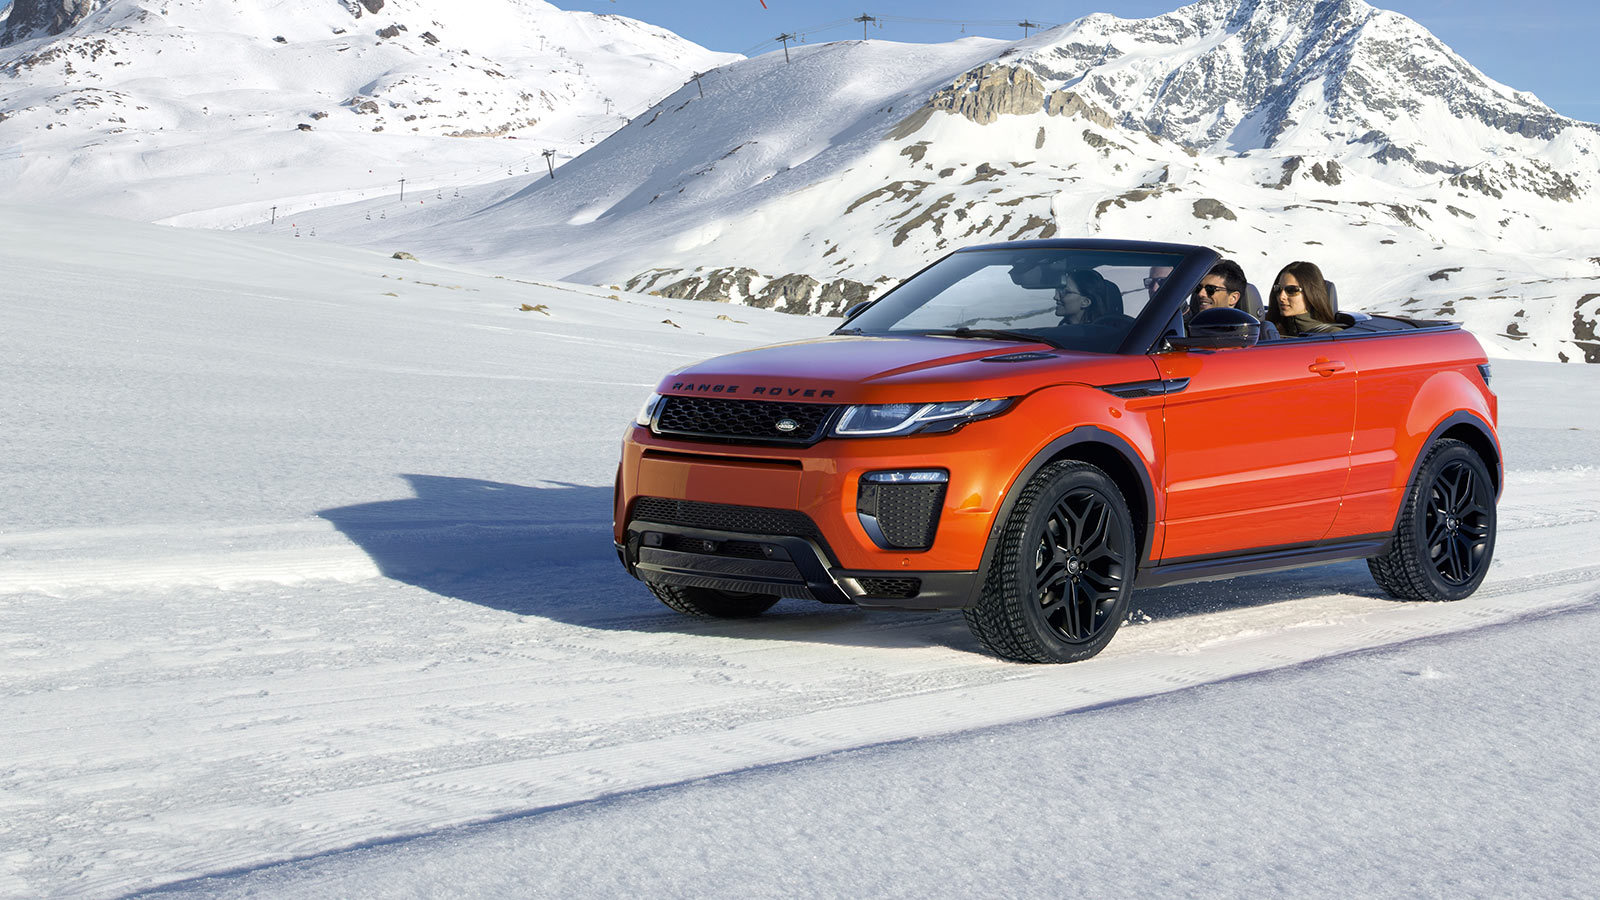 Evoque Convertible driving safely in the snow.